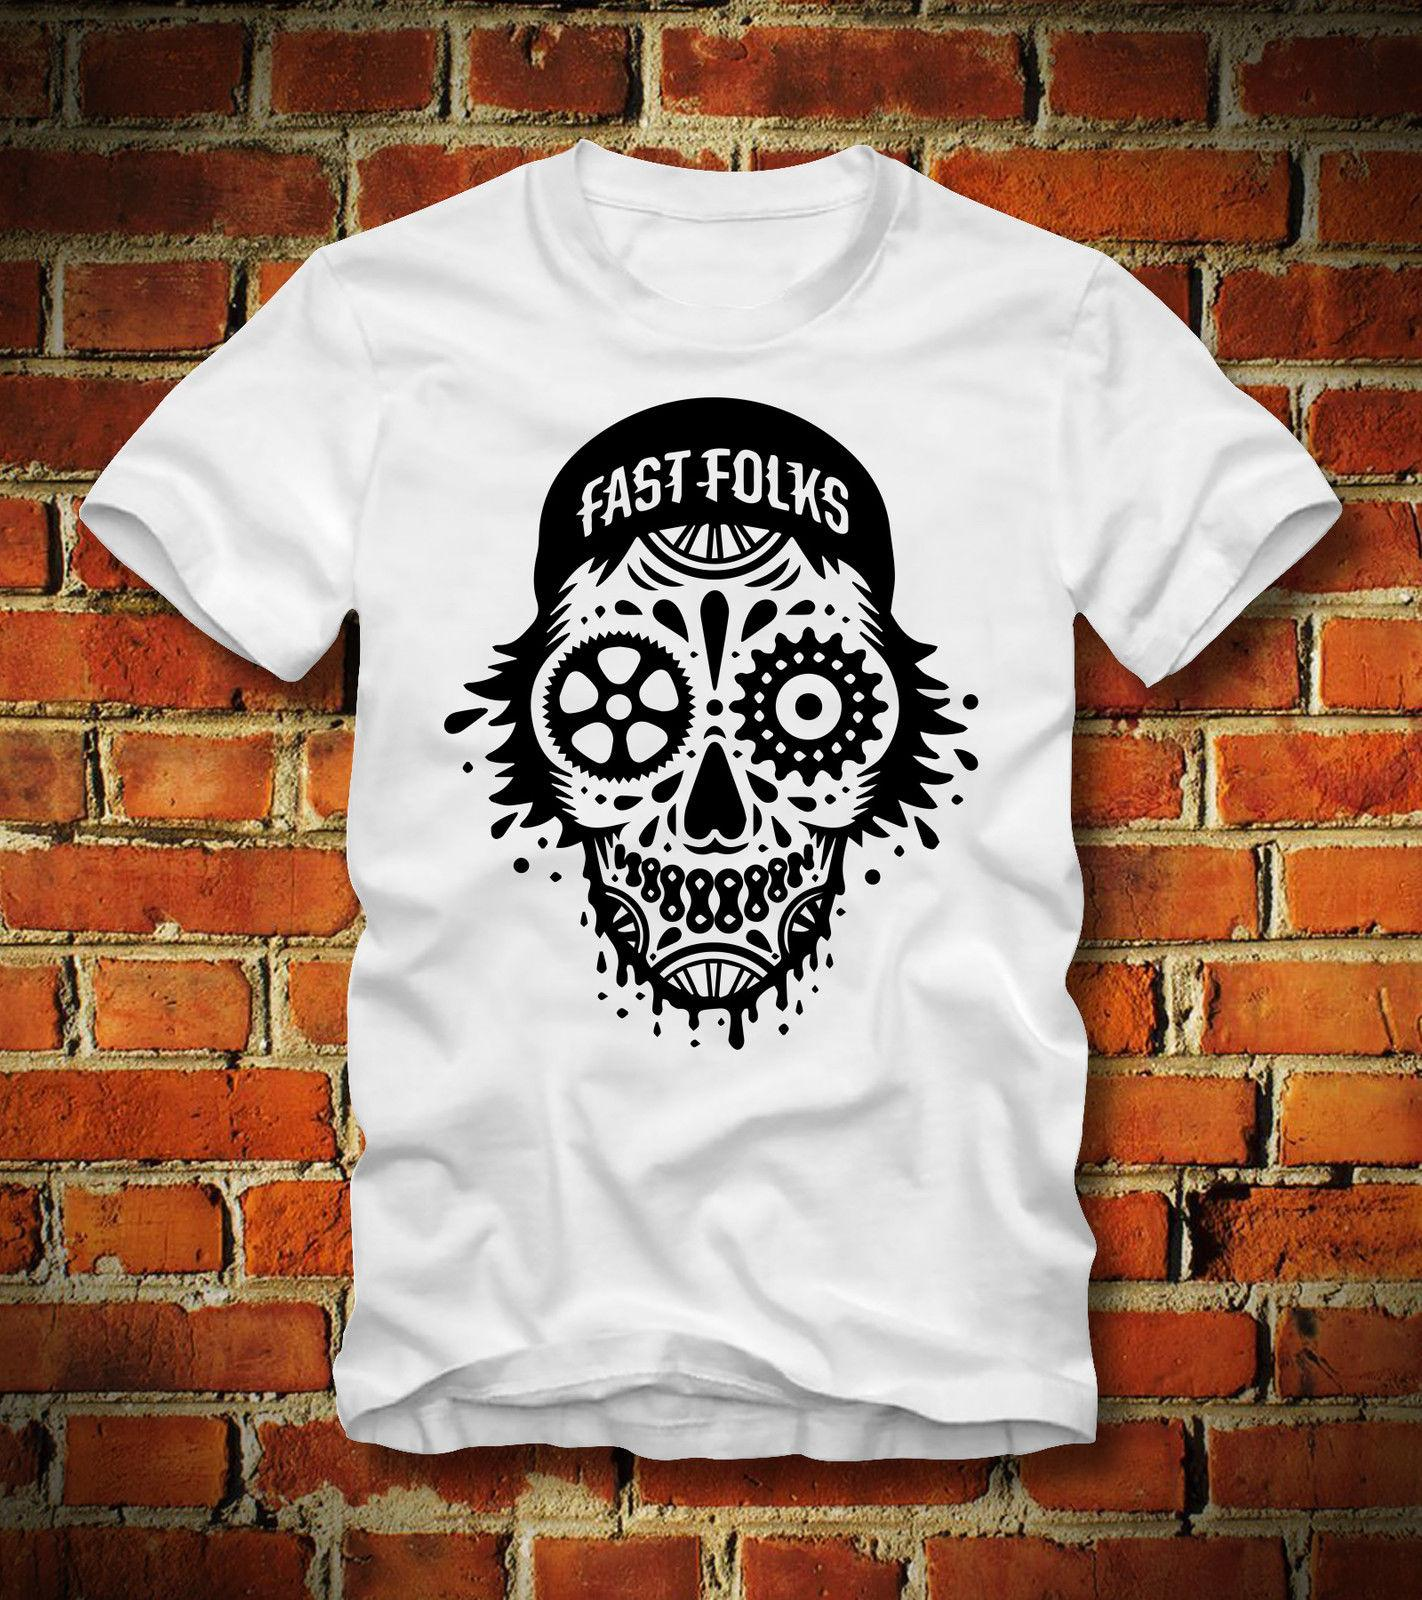 BOARDRIPPAZ T SHIRT FIXED GEAR FIXIE FAST FOLKS BICYCLE FAHRRAD RENNRAD SKULL FG Funny free shipping Unisex Casual tee gift